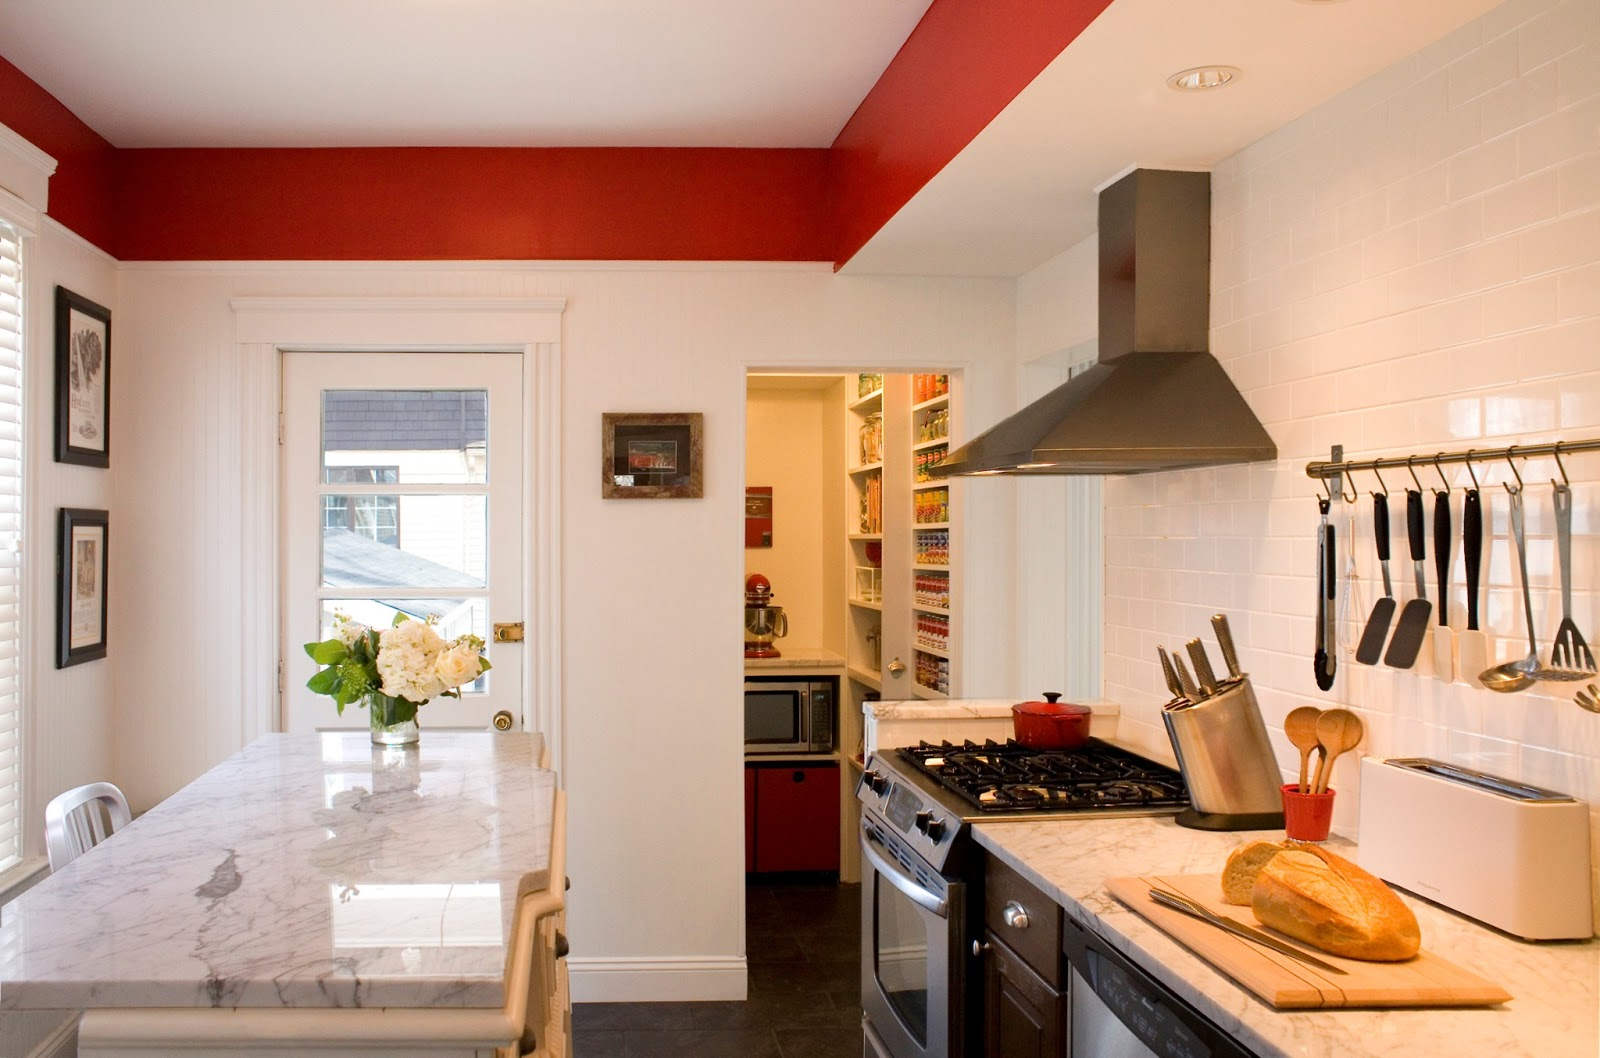 how to make money off renovating houses